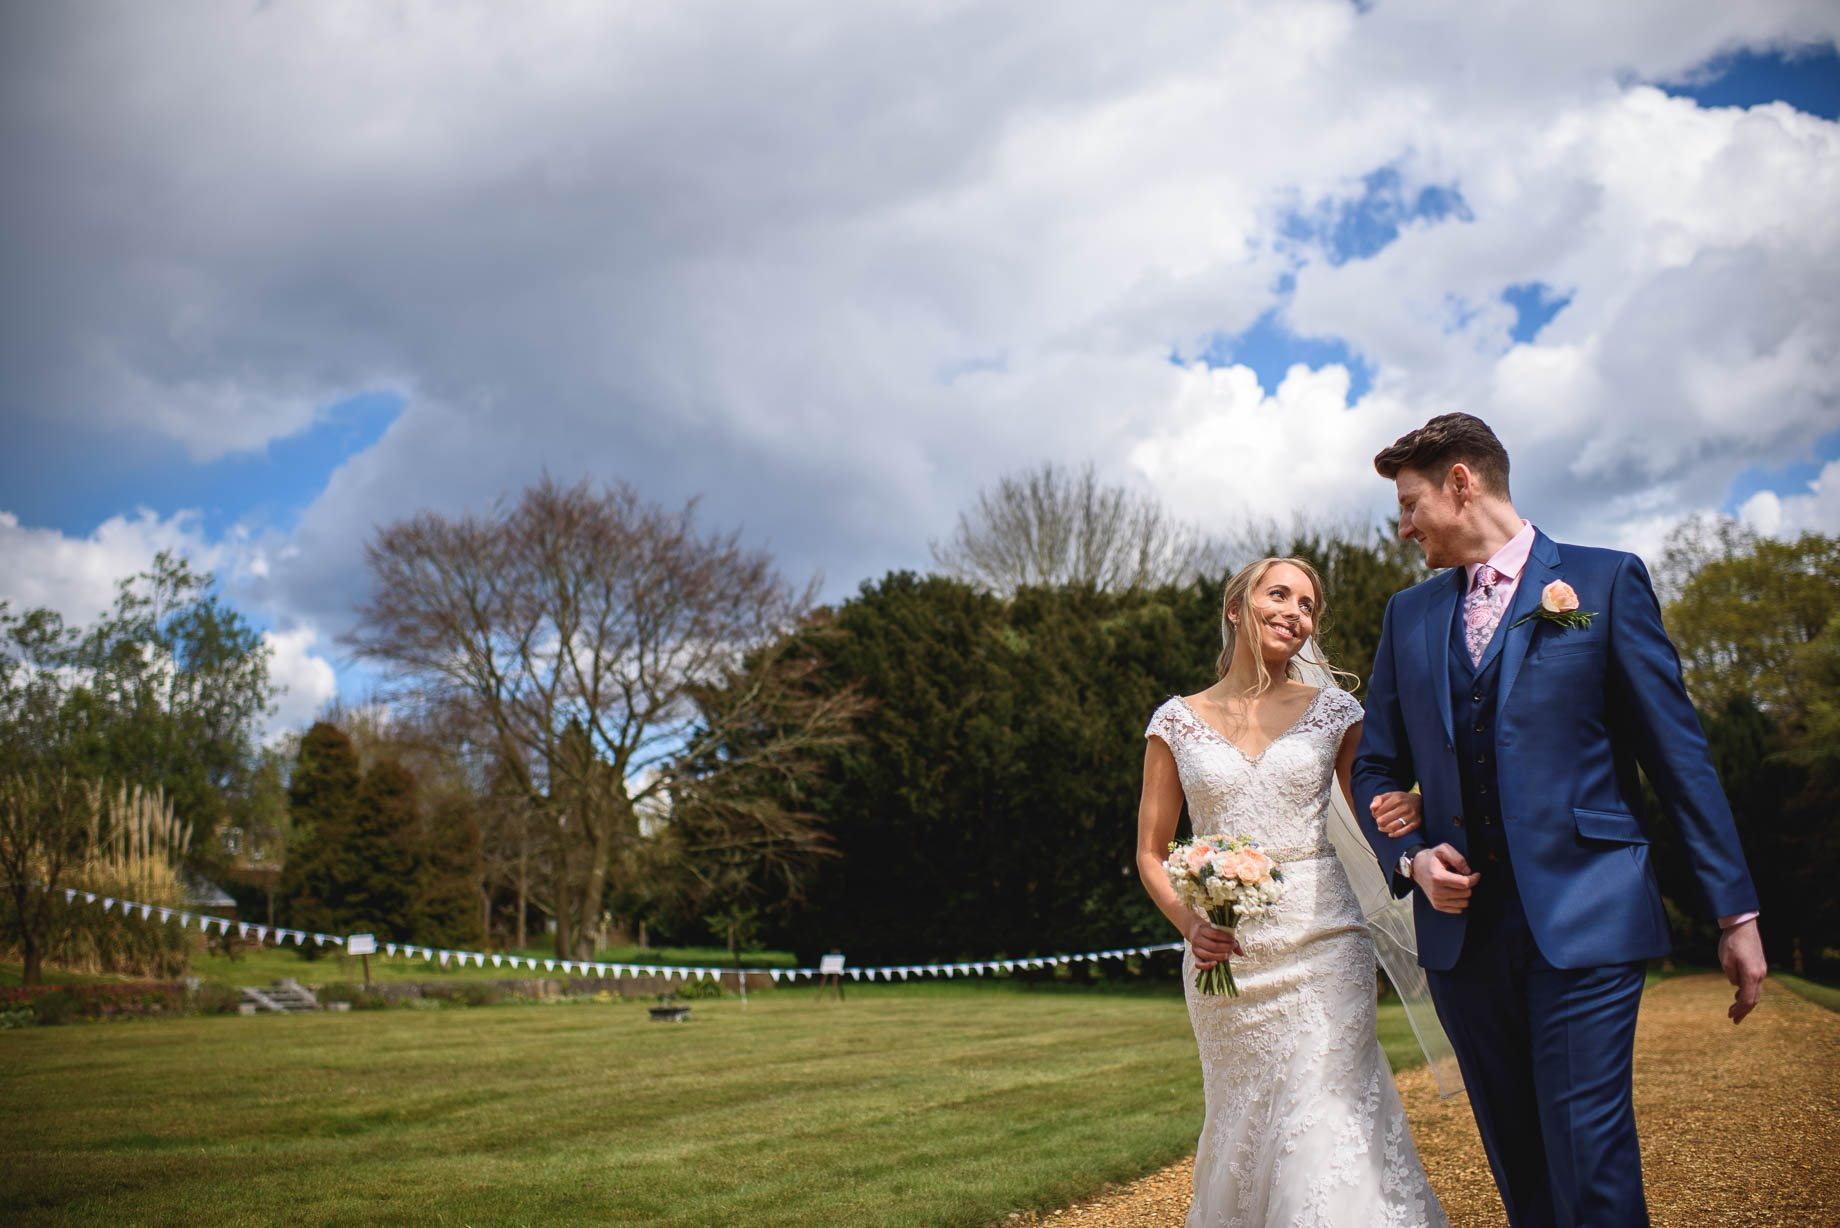 Hampshire wedding photography by Guy Collier - Emily and Tom (91 of 164)